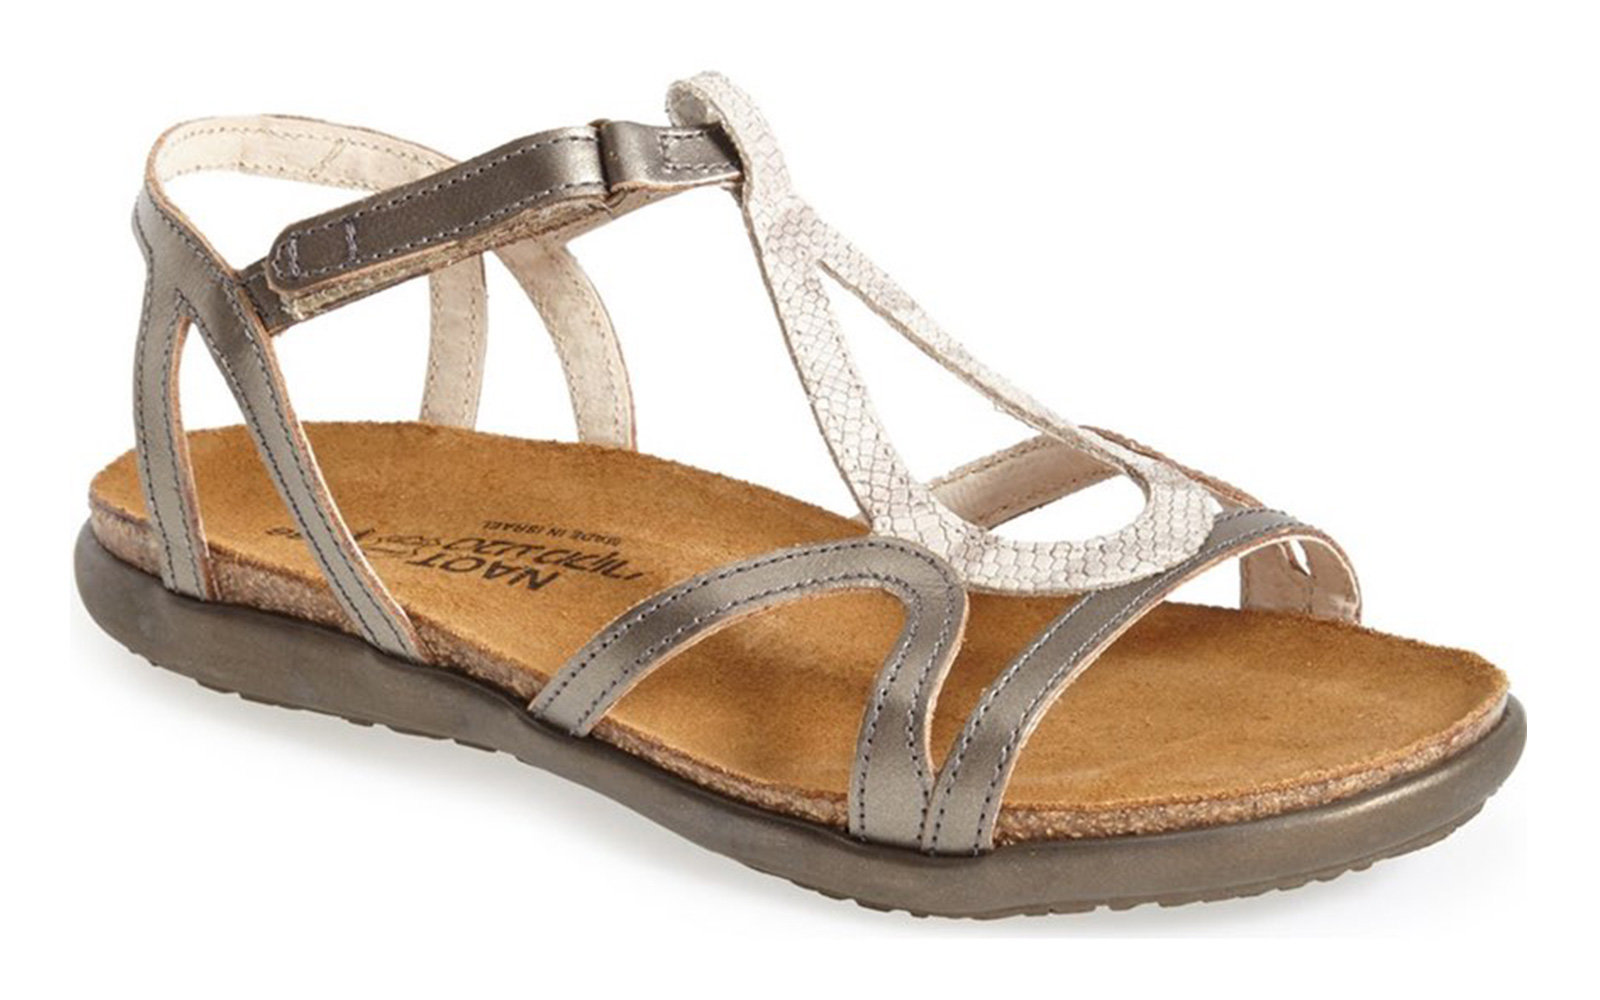 3a8679da3e4b Naot Dorith Sandal in Beige Snake Pewter. Beach Vacation Sandals